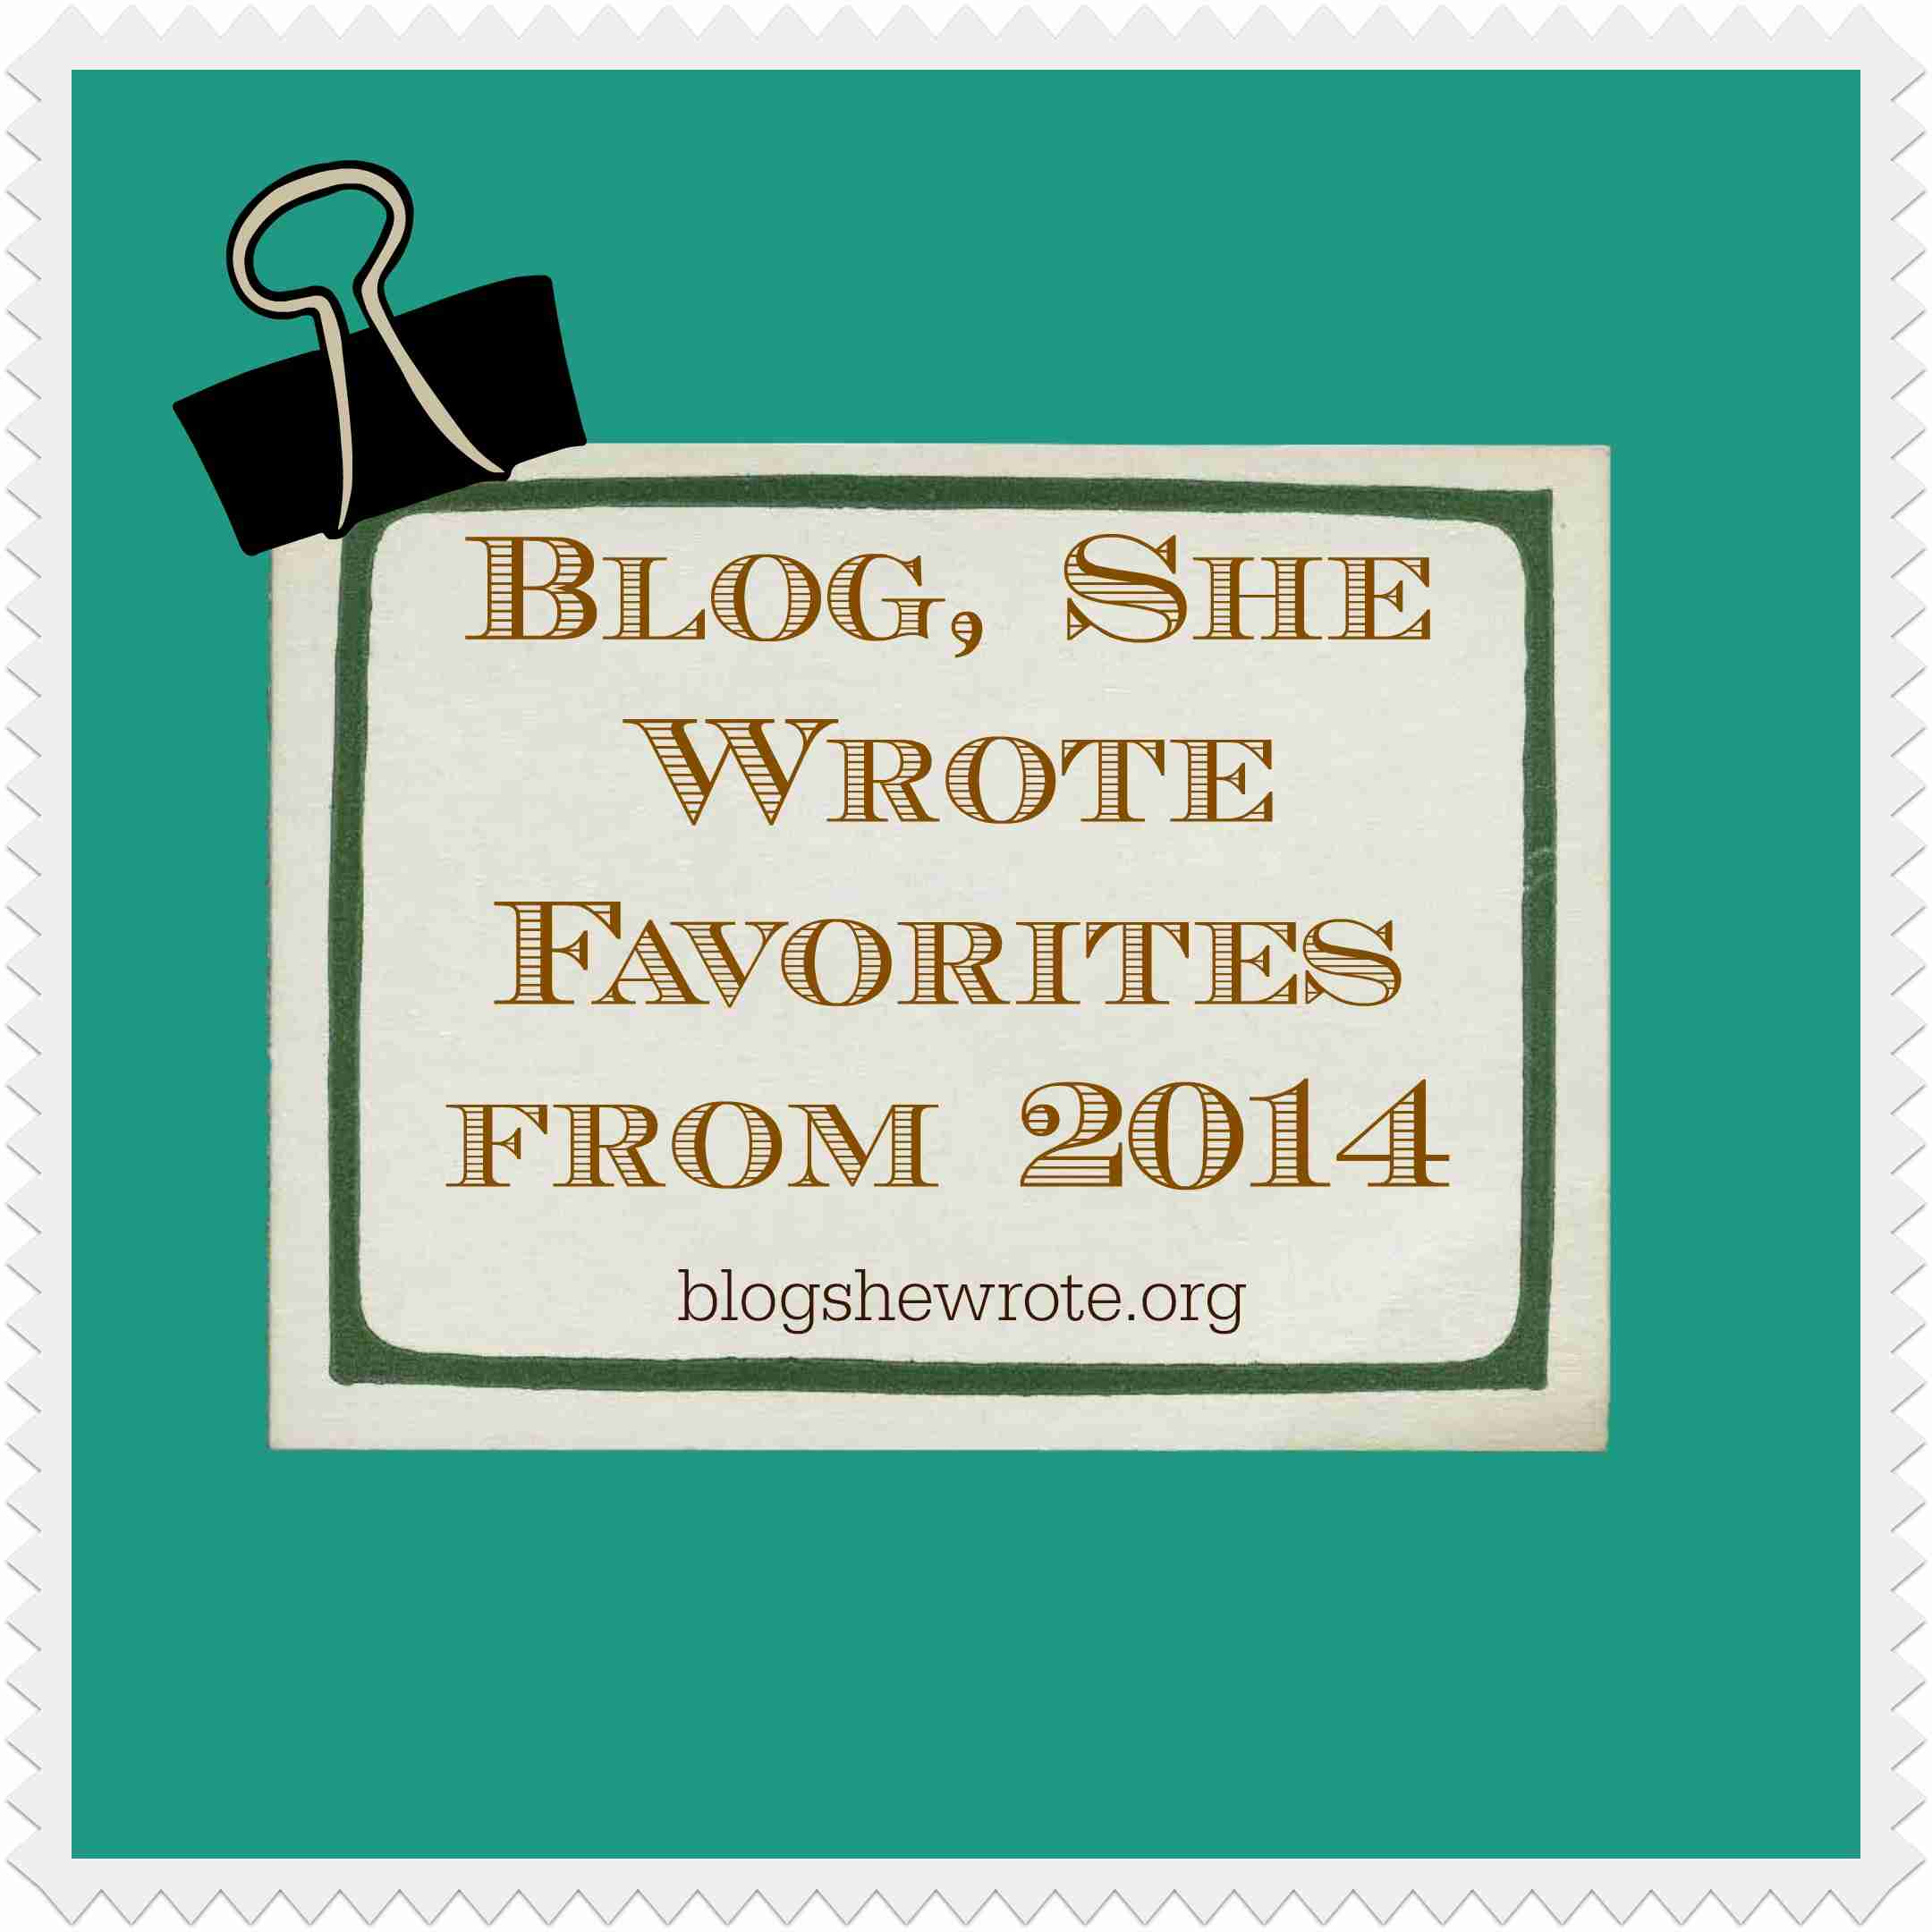 Blog, She Wrote Favorites 2014